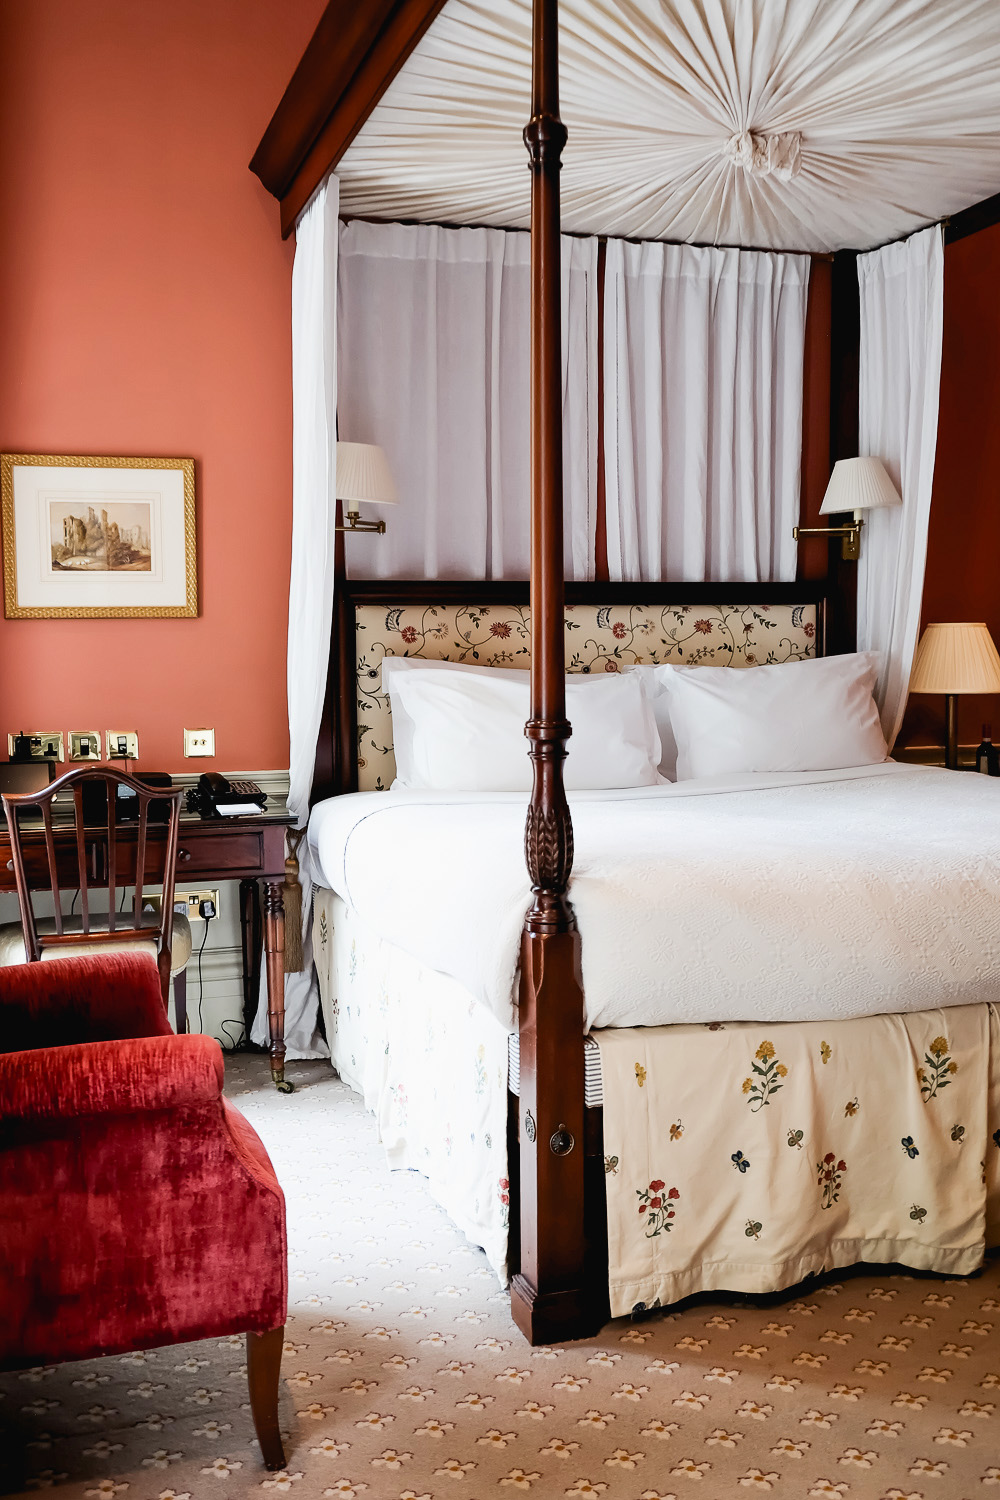 Junior Suite at Roseate House London, a luxury boutique hotel with 48 rooms and suites across three connecting Grade-II townhouses in Westbourne Terrace | Mondomulia